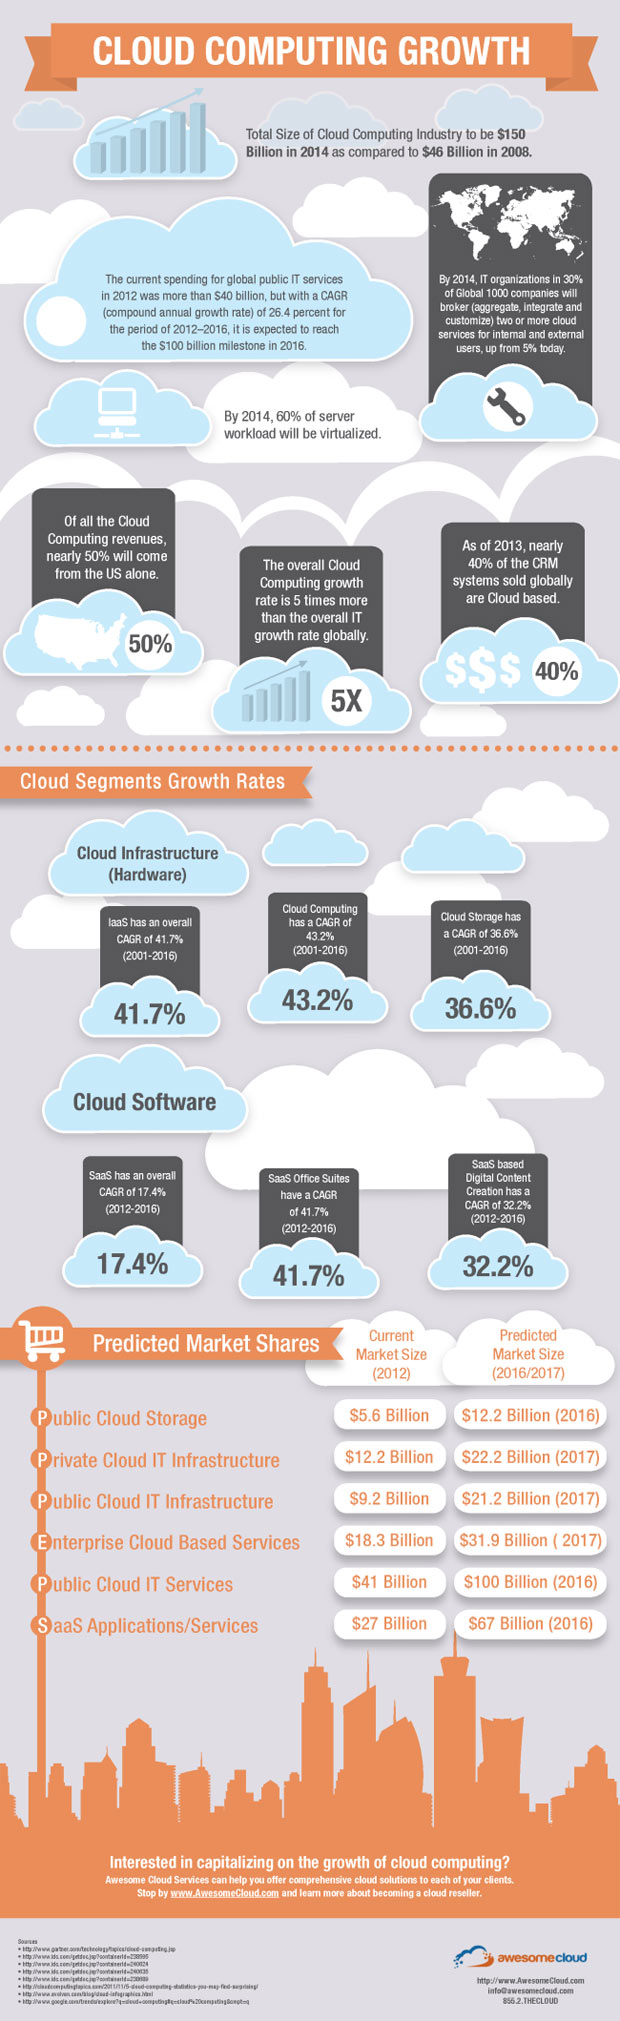 cloud-computing-growth-infographic